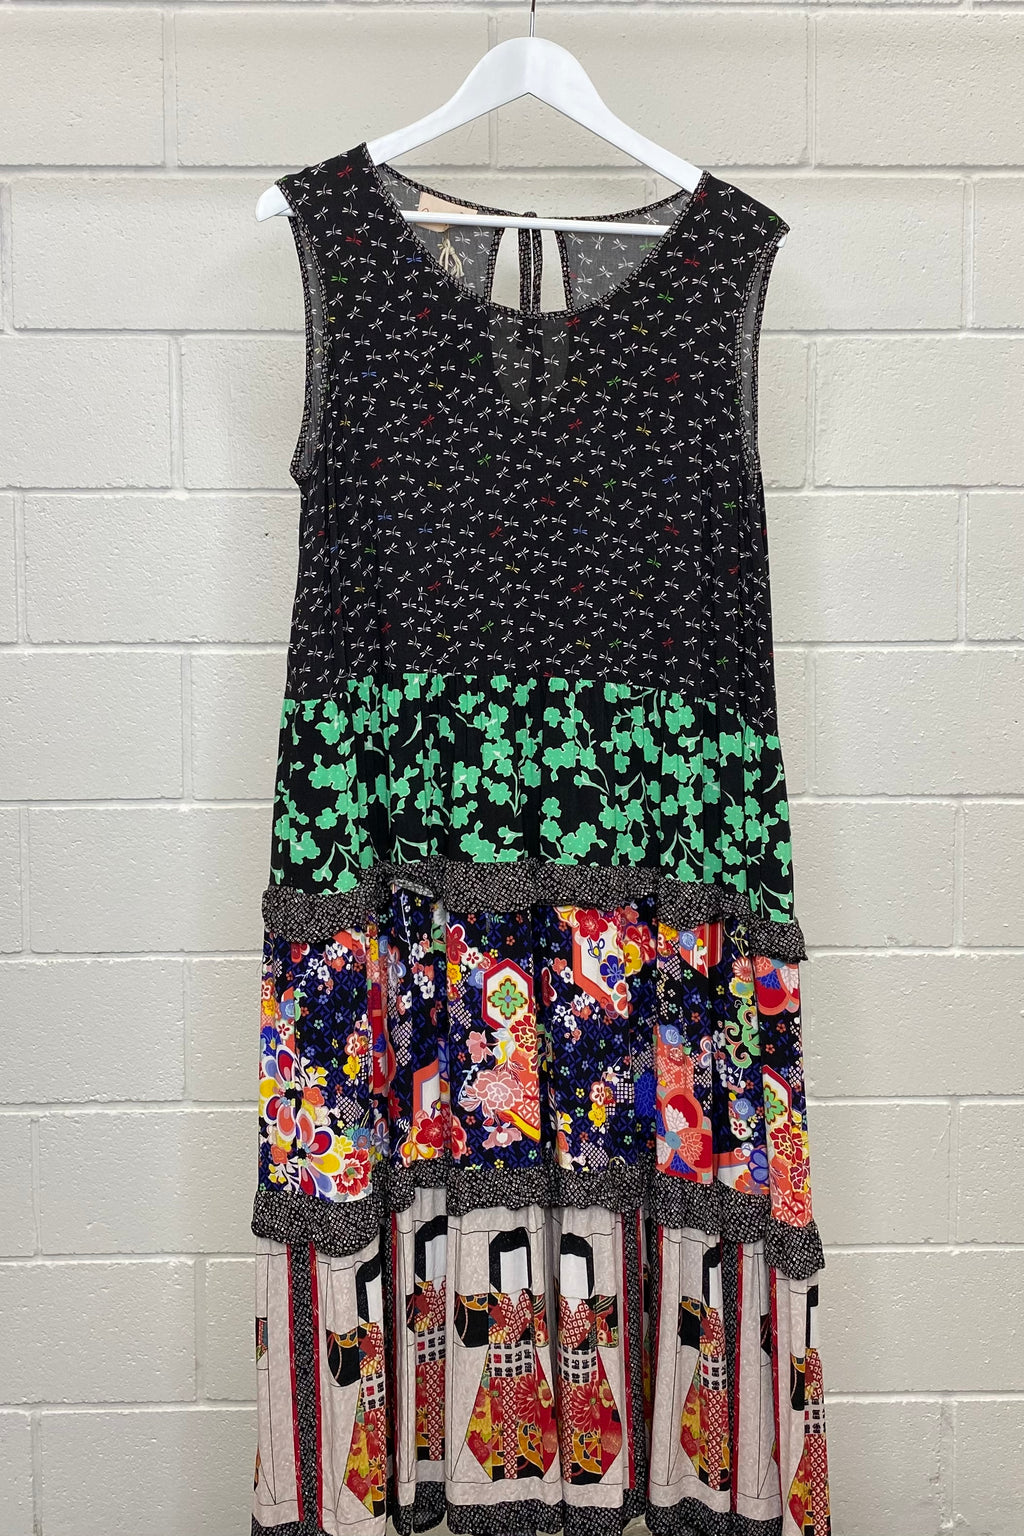 FLORAL AND PRINTED MAIOCCHI SIZE 16 | Dress (Preloved)